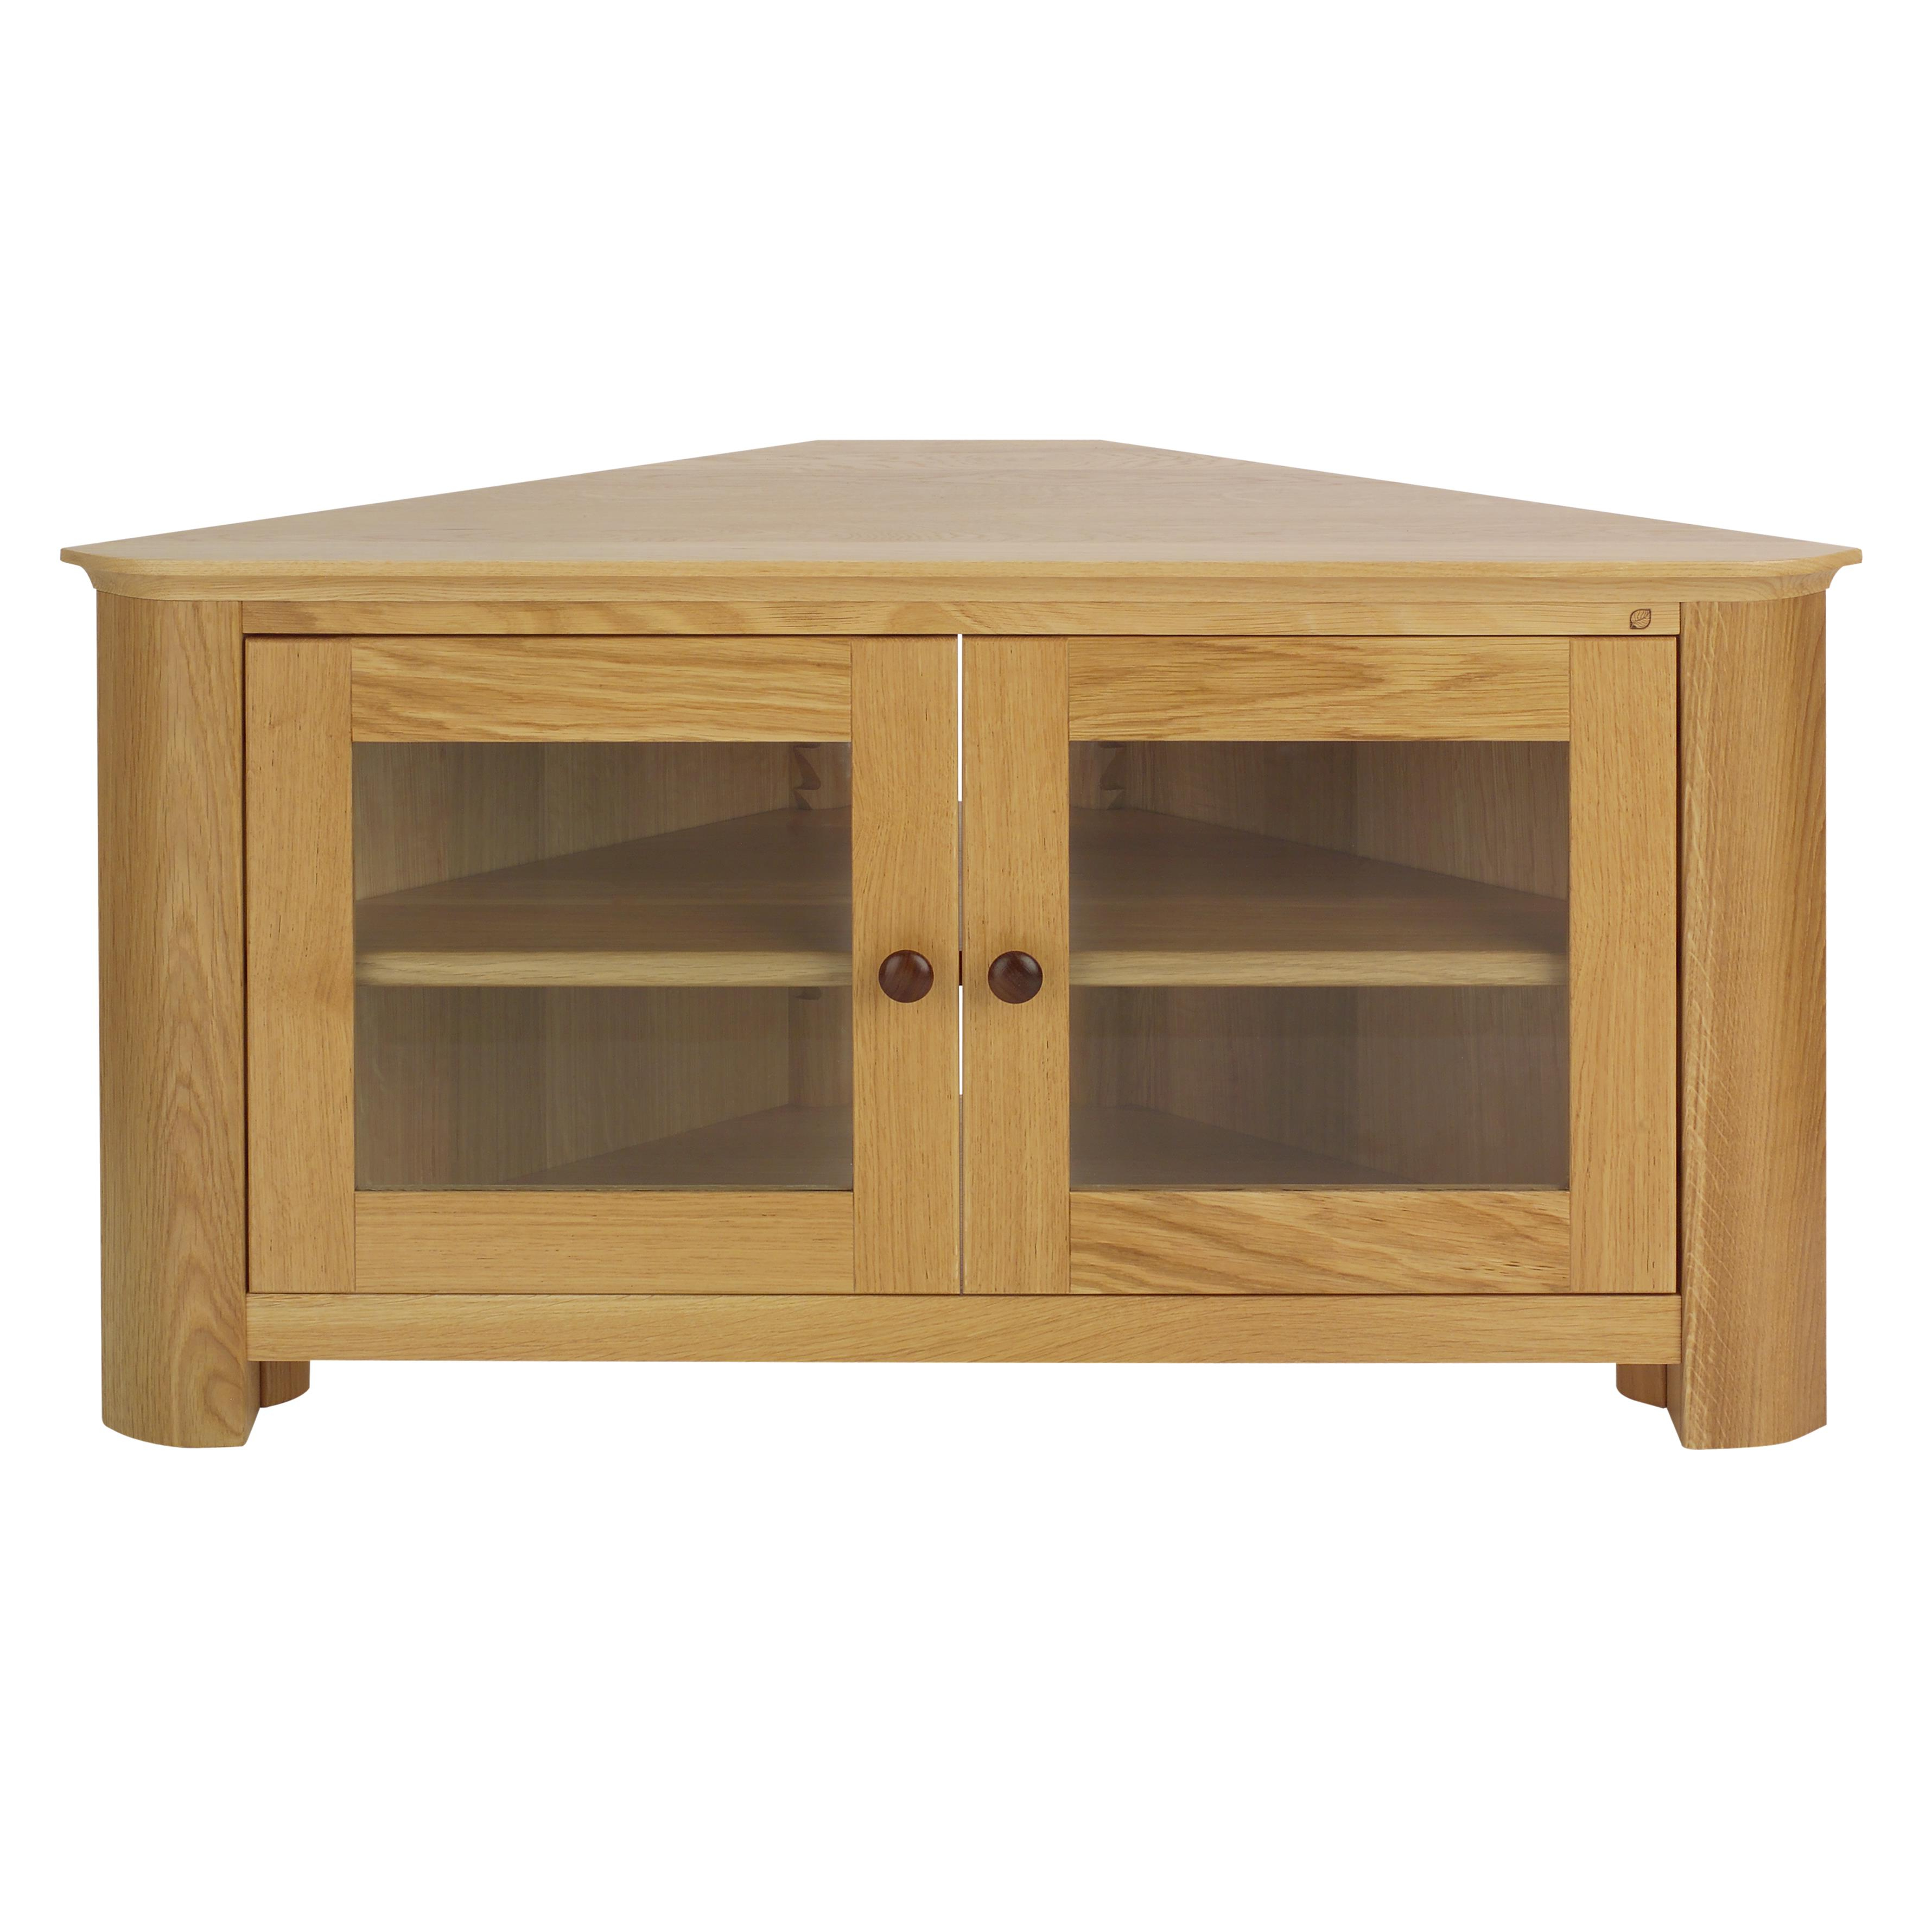 Corner Wooden Tv Cabinets With Regard To Well Liked Medium Oak Tv Stand Or Corner With Plus Cabinet Together Stands Flat (View 8 of 20)